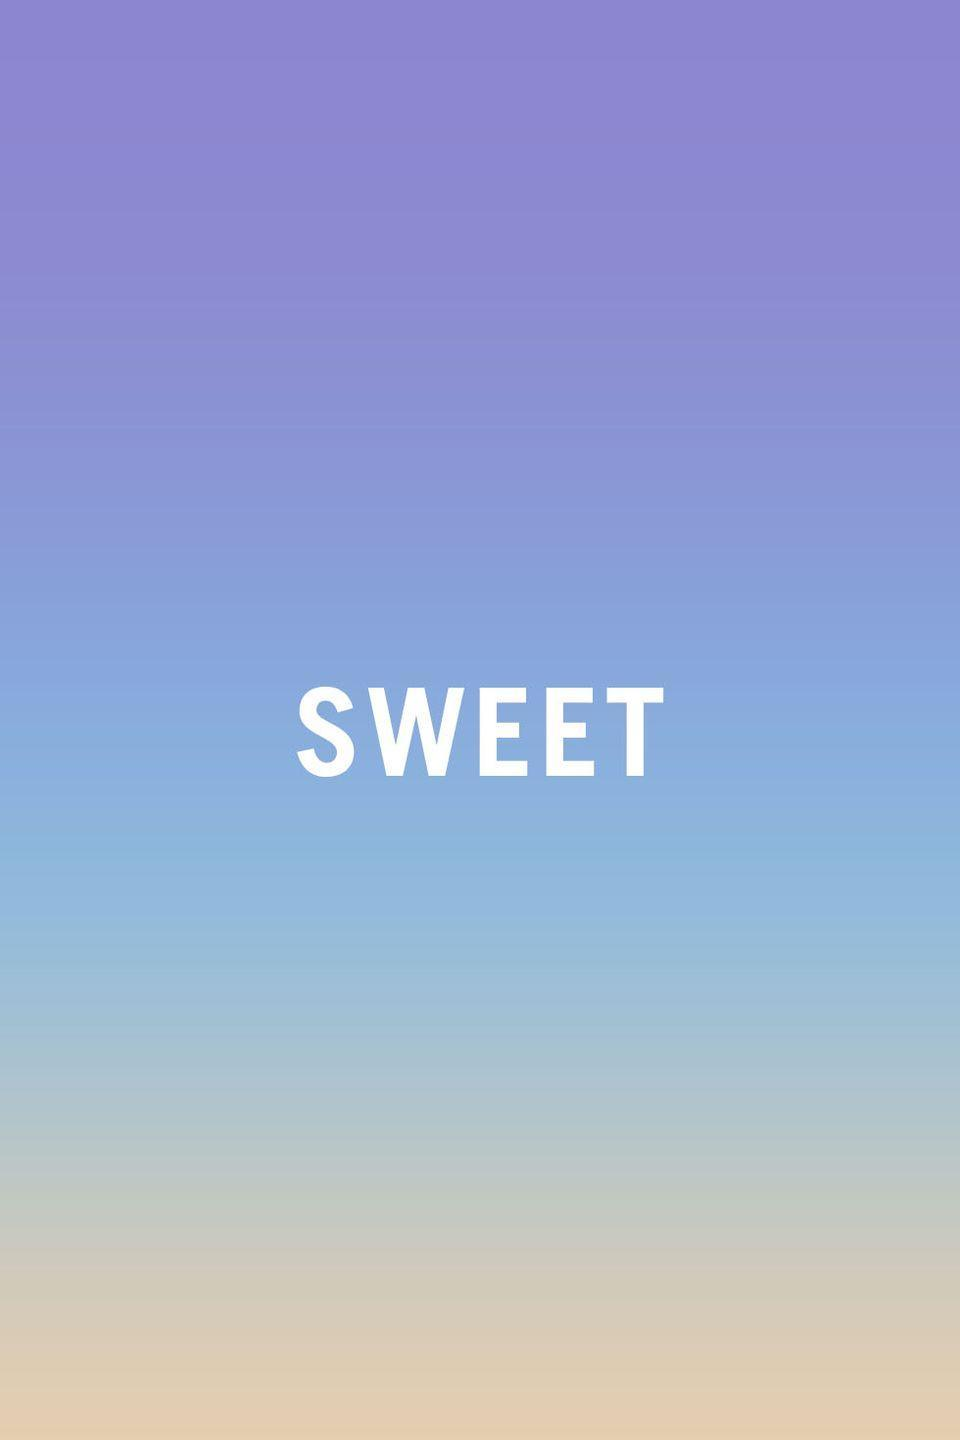 """<p>Fruit is sweet. Candy is sweet. Grandmas and babies and puppies are all sweet. But saying your new sound system is """"sweeeeeeeet"""" just makes you sound like a surfer without a board stuck in a bad part of the '90s. Not that saying something is """"cool"""" """"hot"""" """"sick"""" or """"killer"""" makes any more sense, frankly. </p>"""